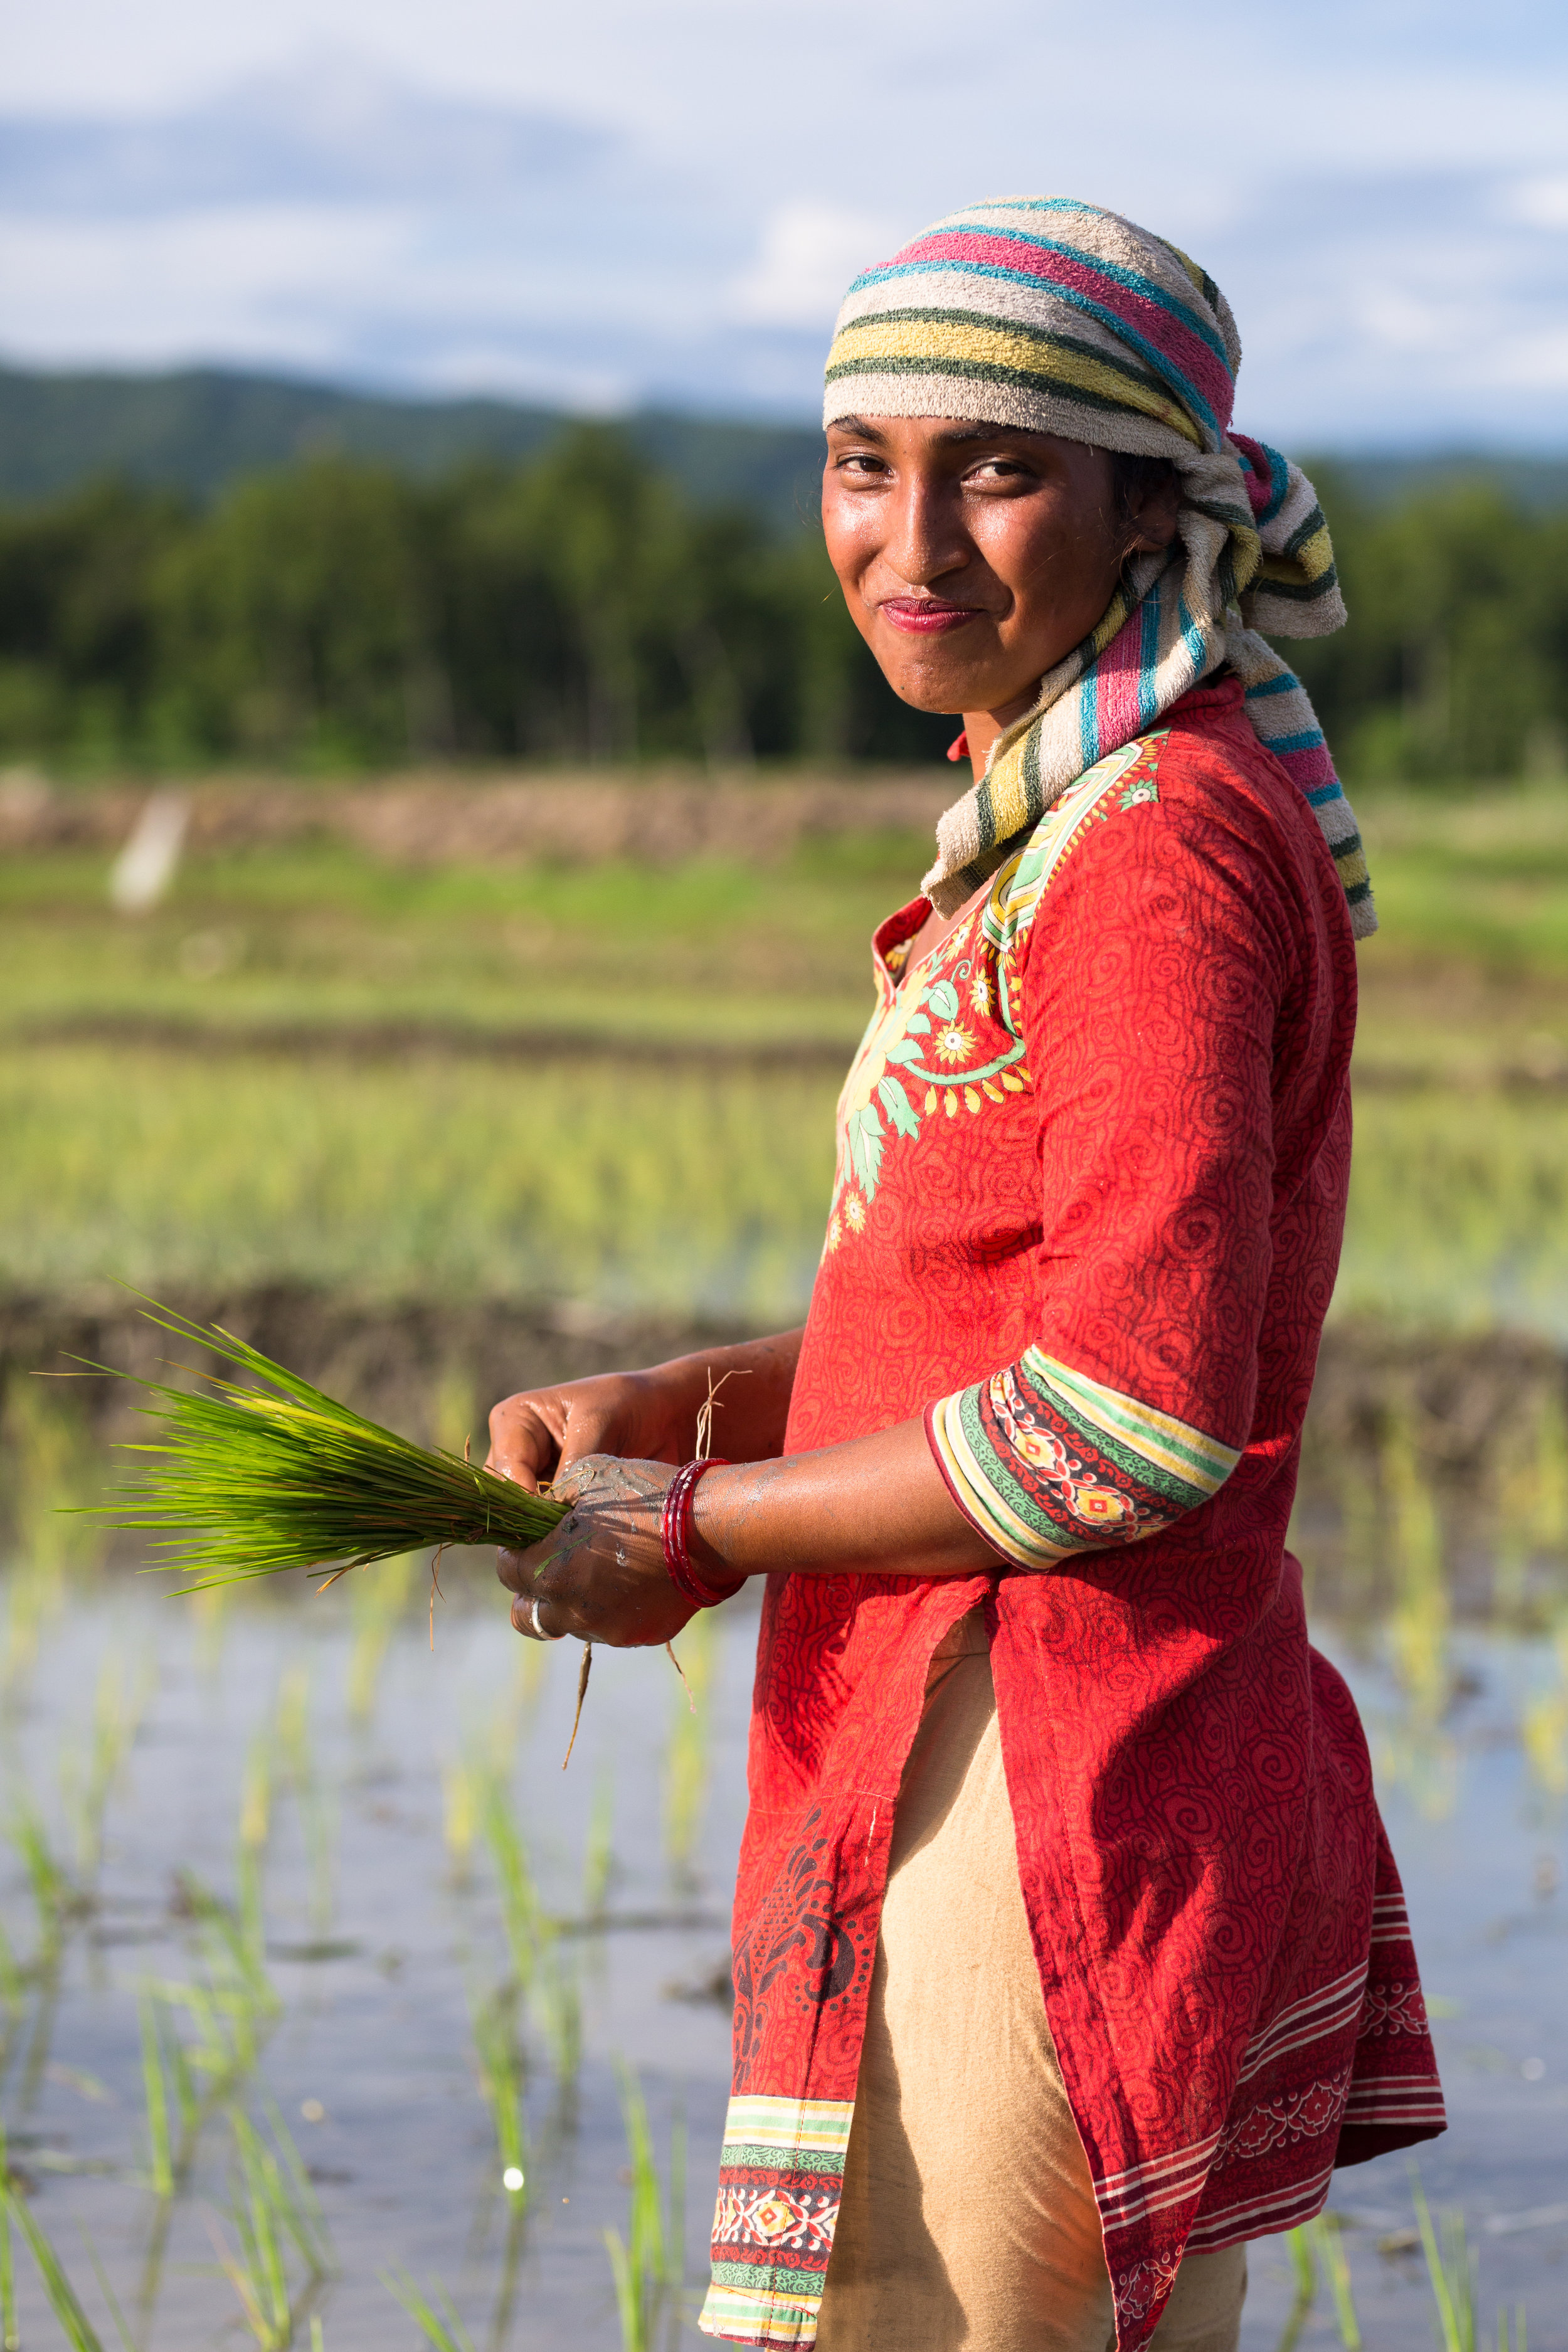 The inspiring women of Raitole plant rice in the muddy water-filled rice fields